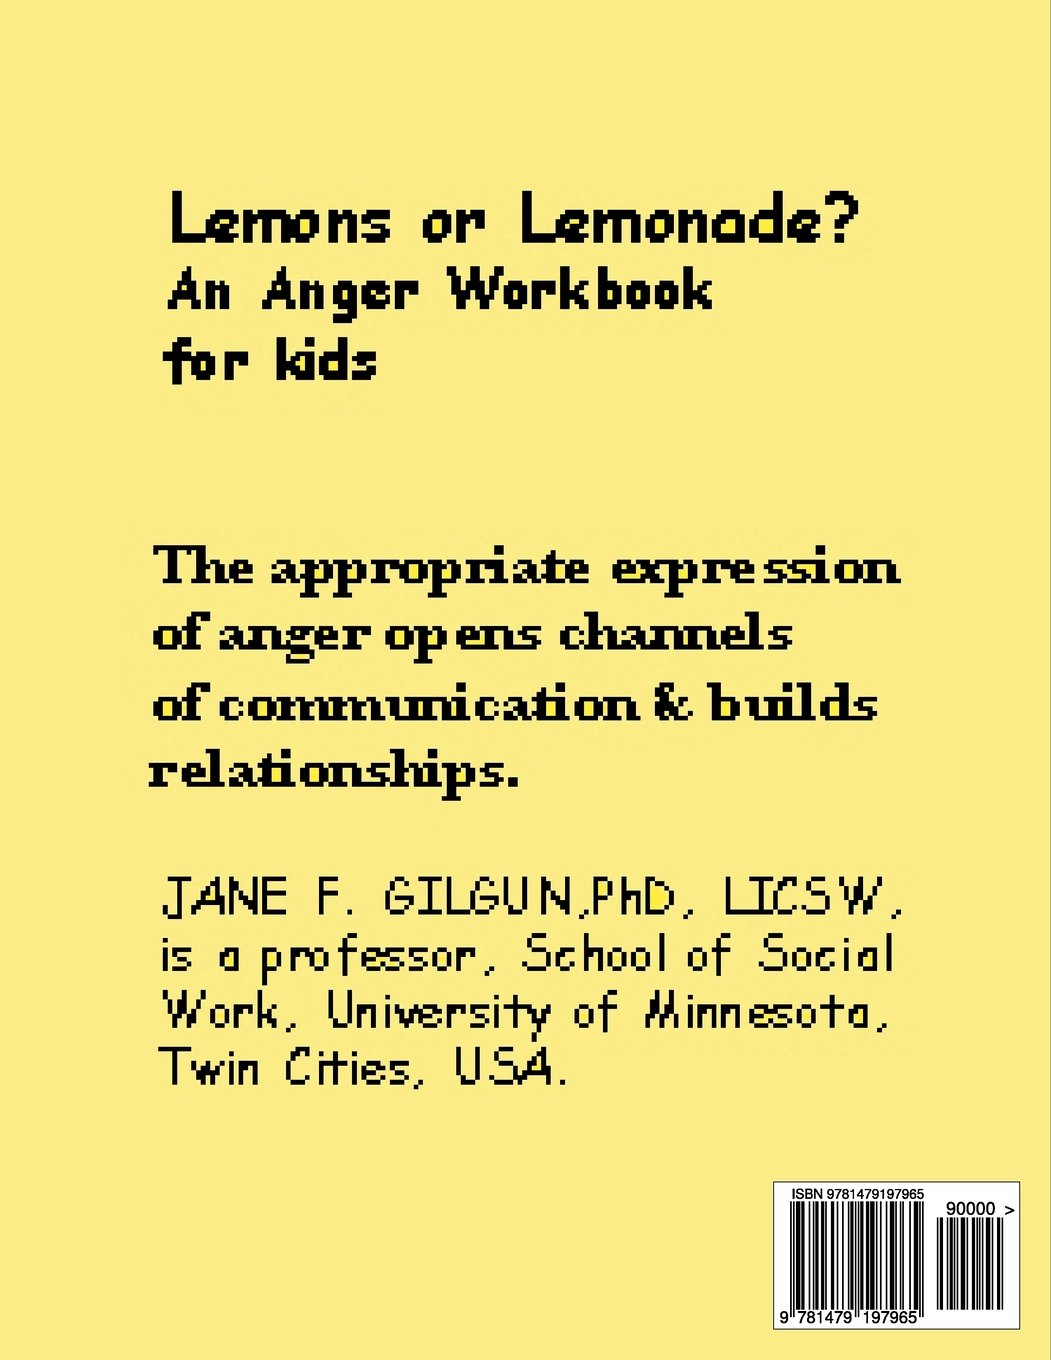 Workbooks anger workbook : Lemons or Lemonade?: An Anger Workbook for Kids: Jane F. Gilgun ...